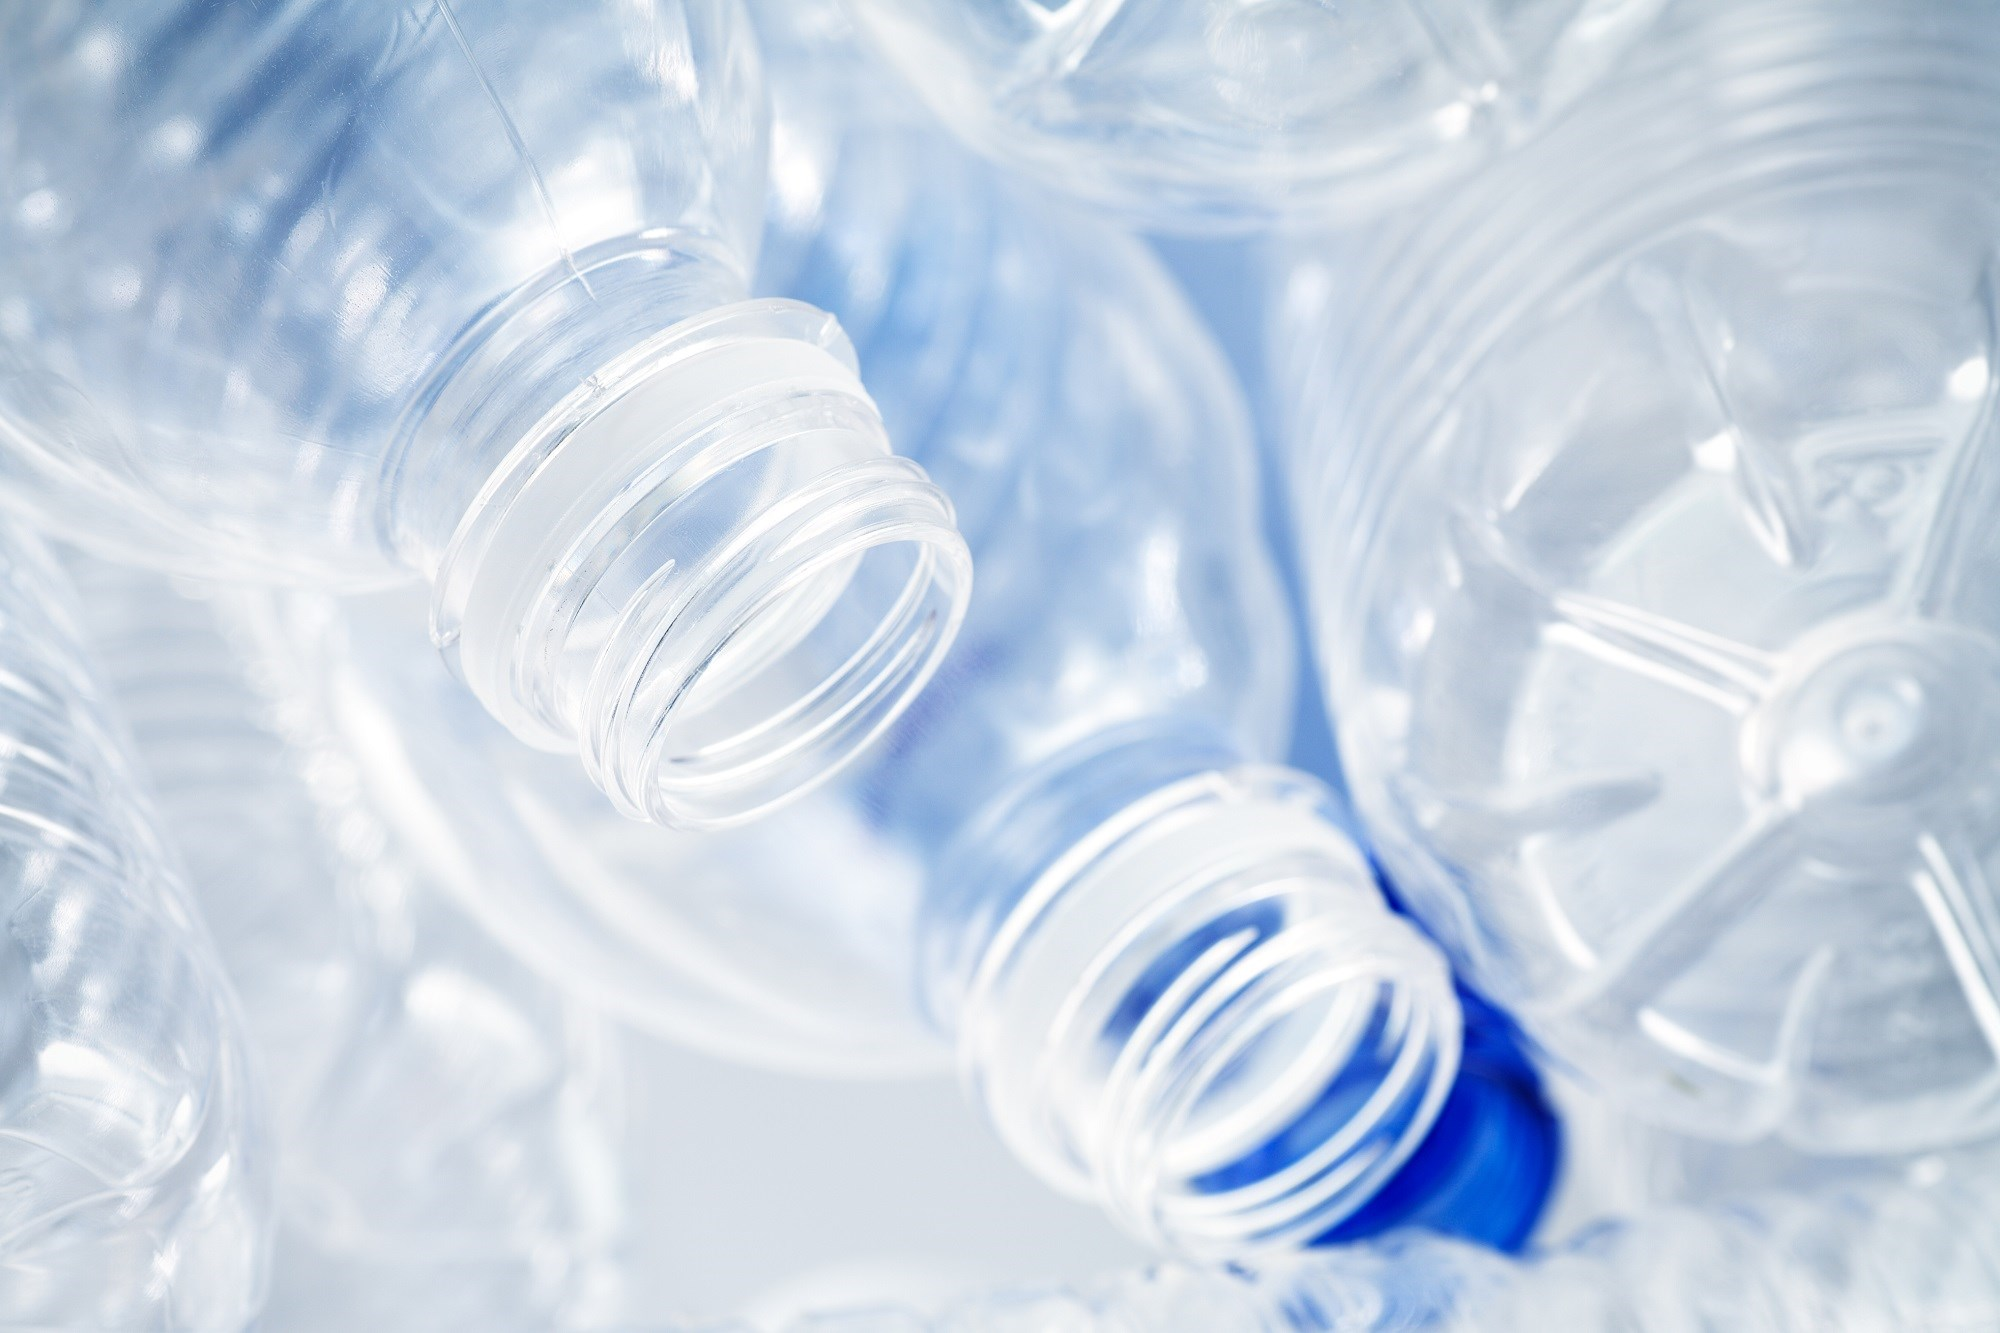 Is BPA Safe? Endocrine Society Addresses FDA Position on Commercial BPA Use